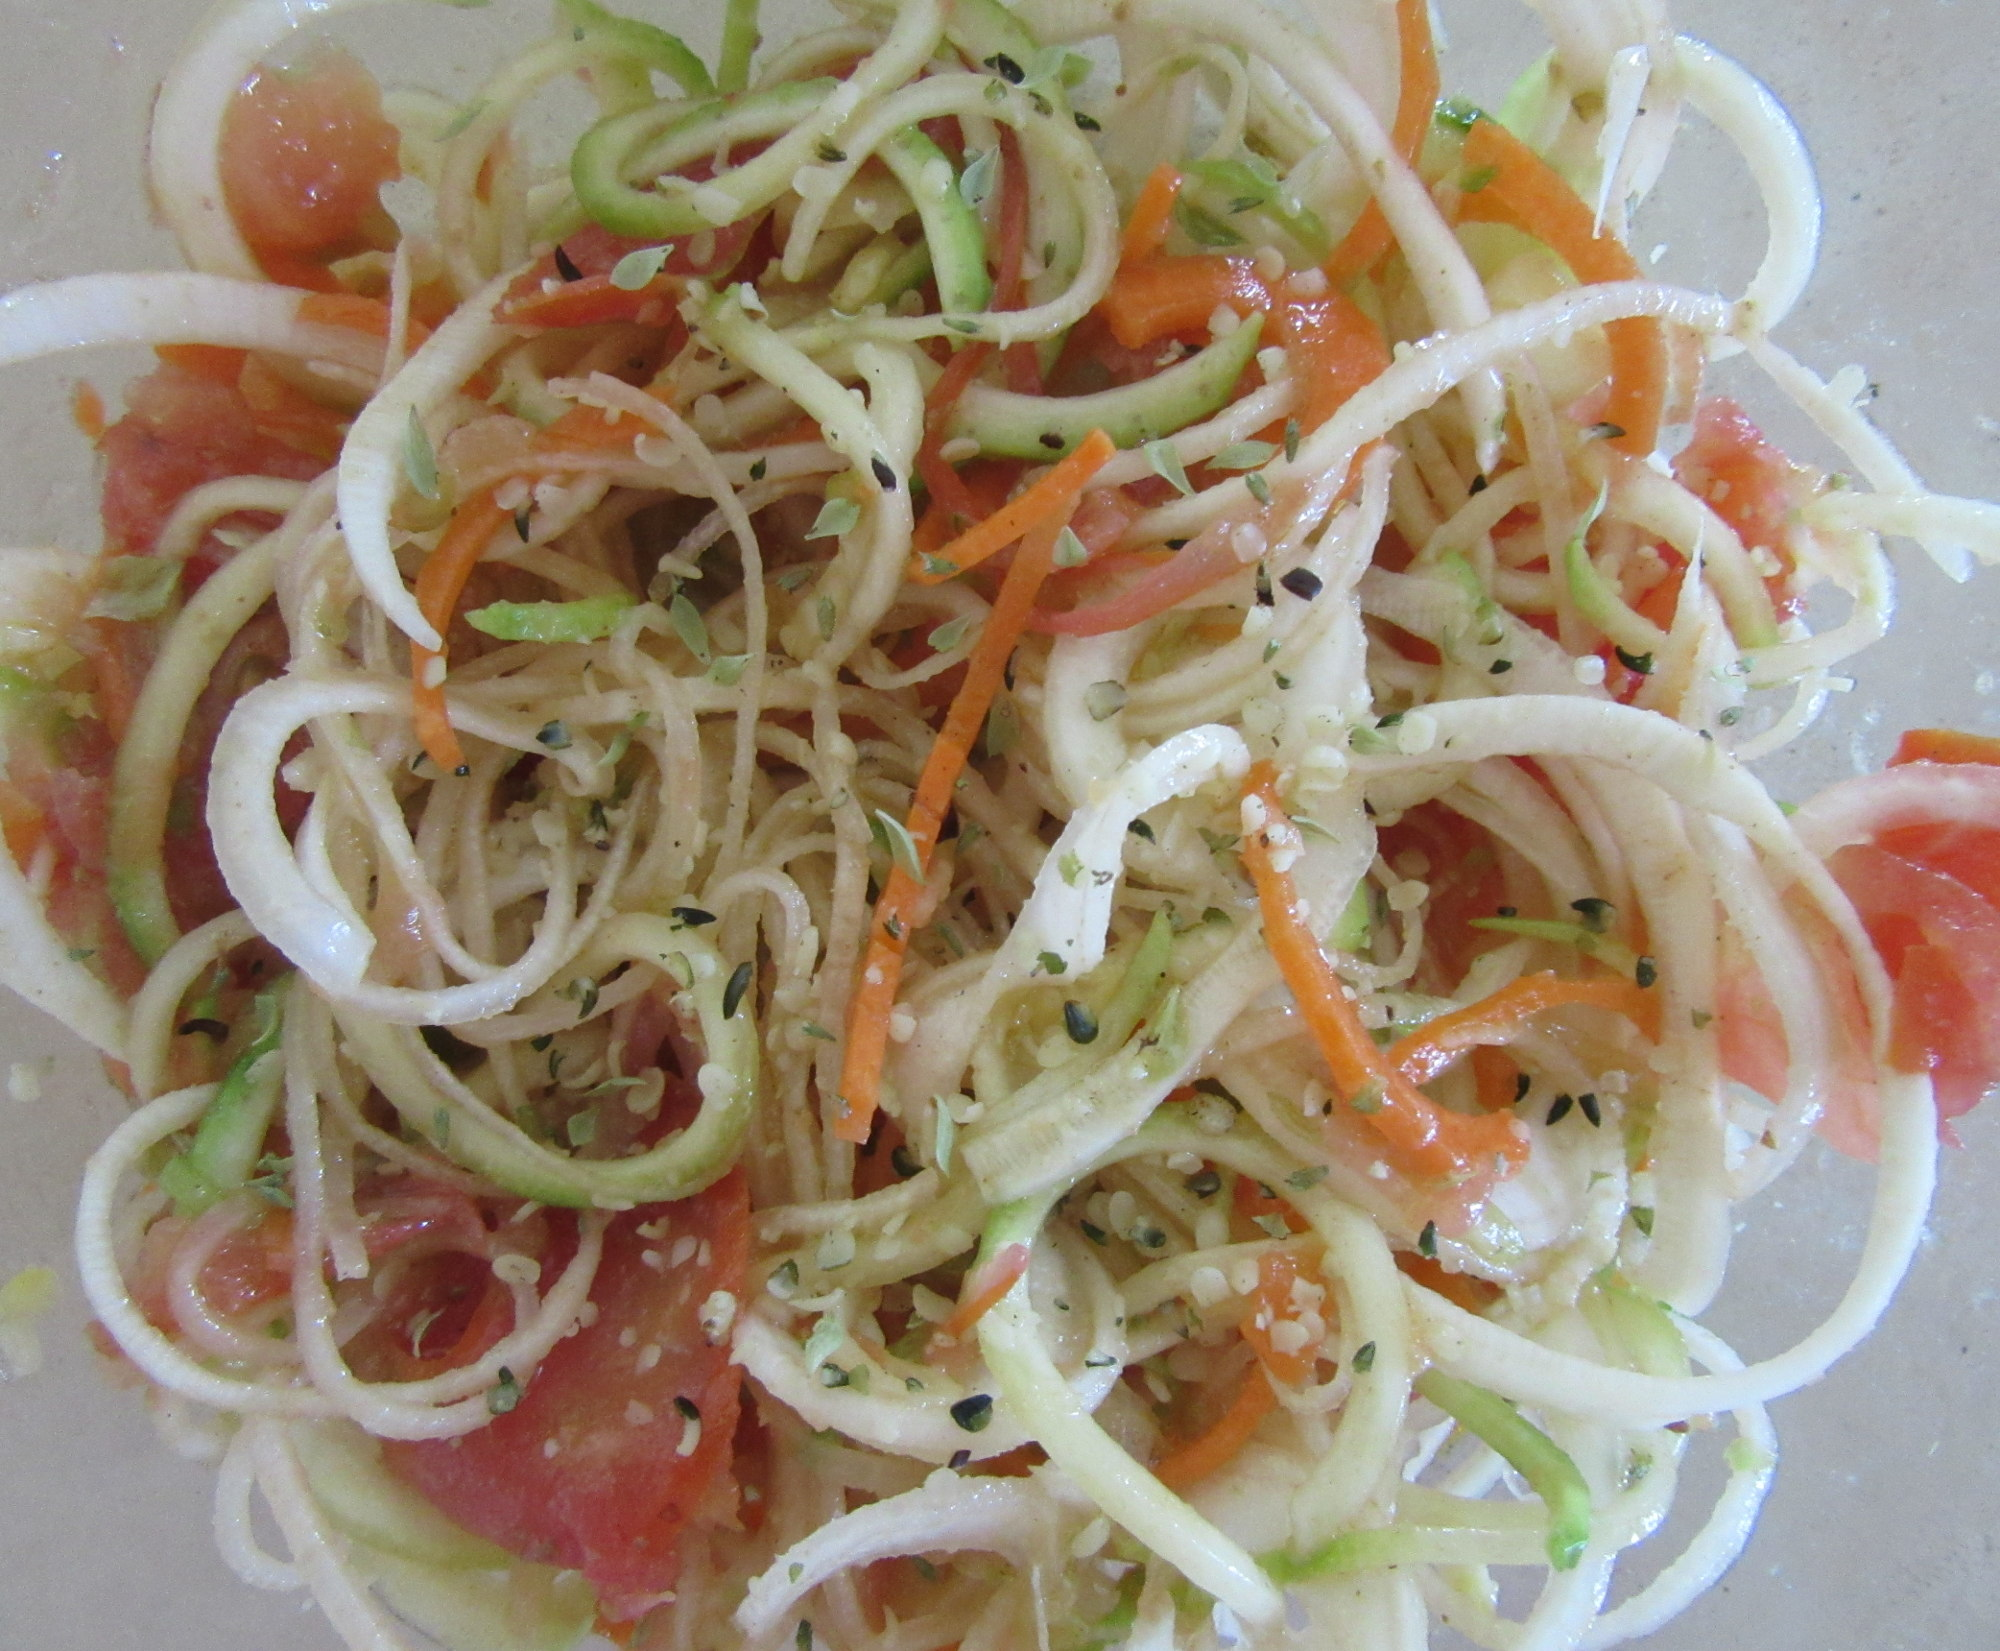 Salad with spiral vegetables.